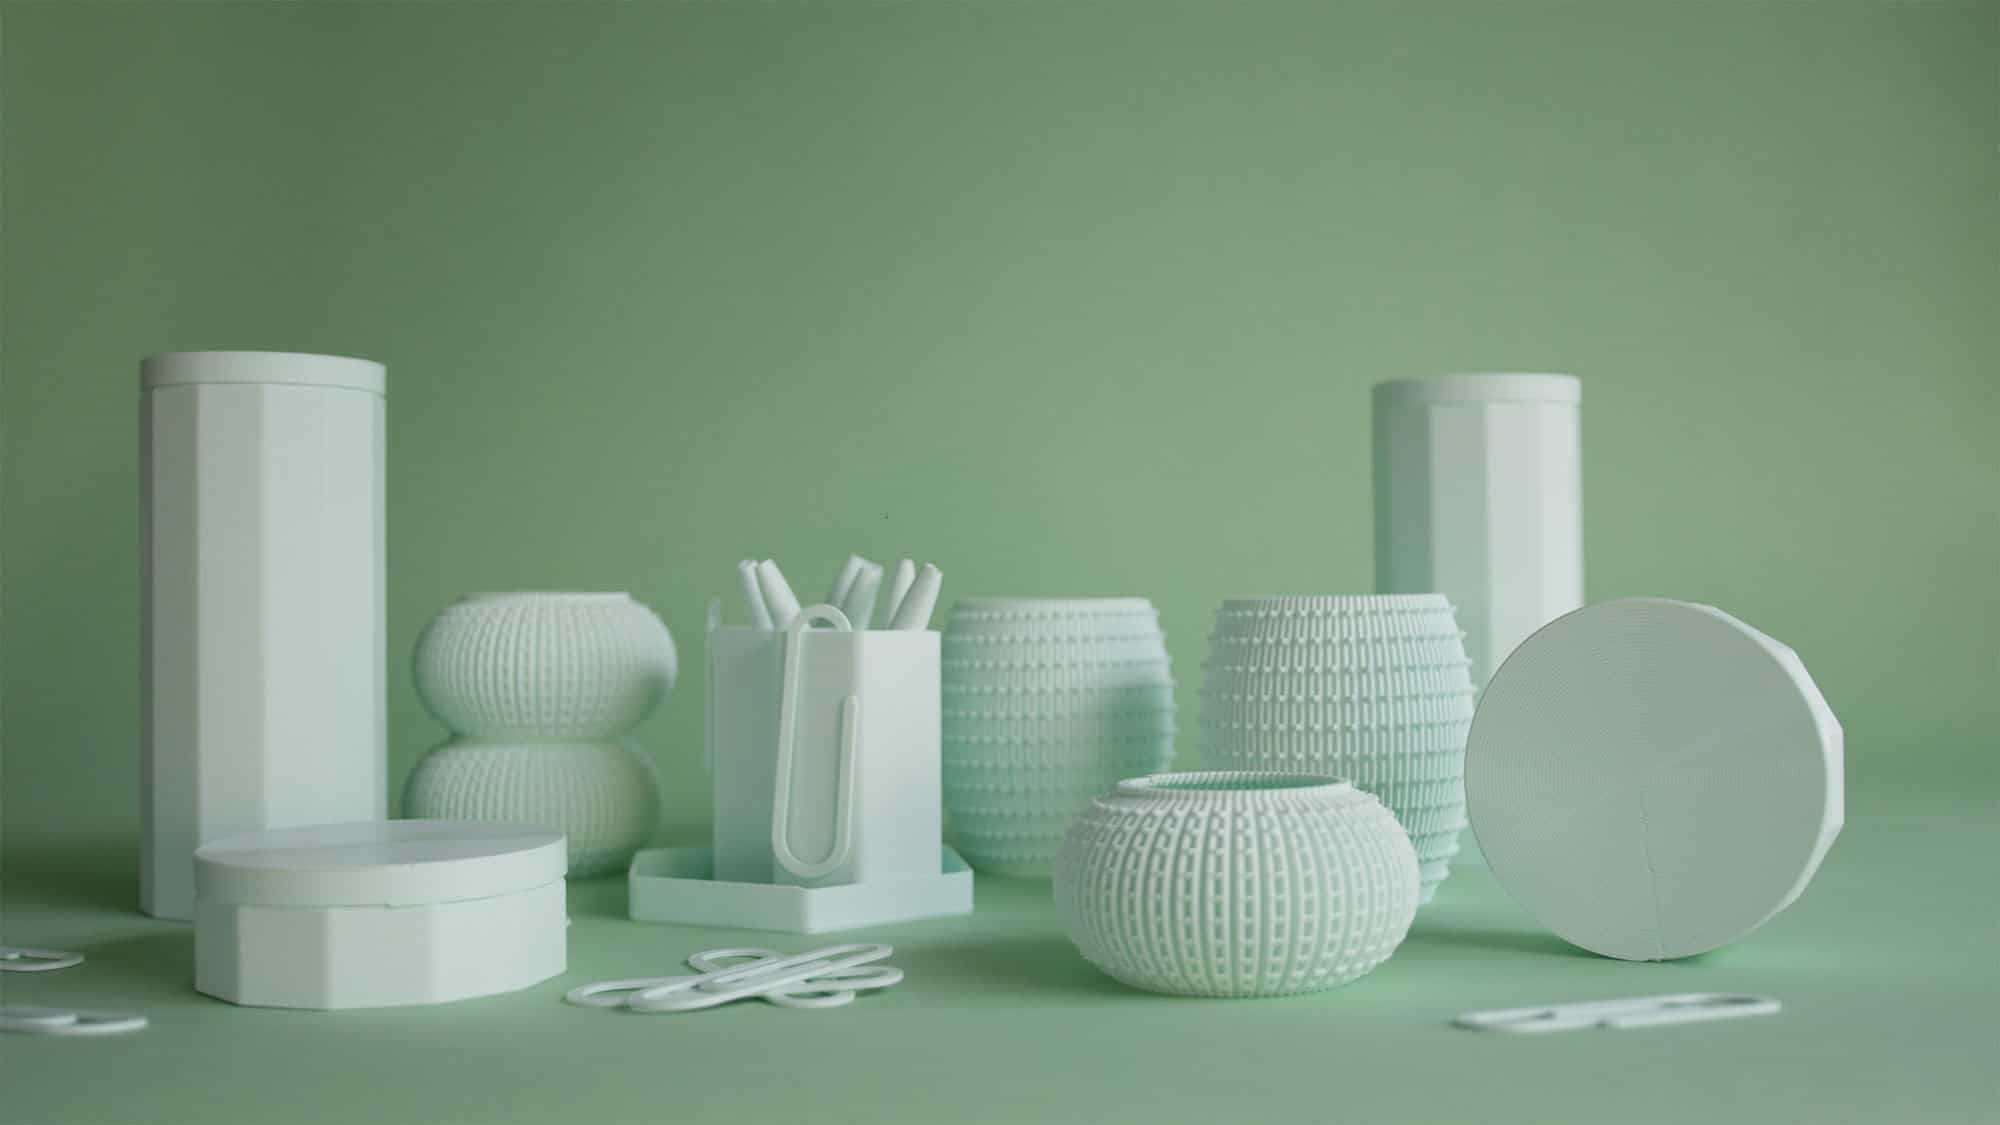 Batch.works 3D printed homeware